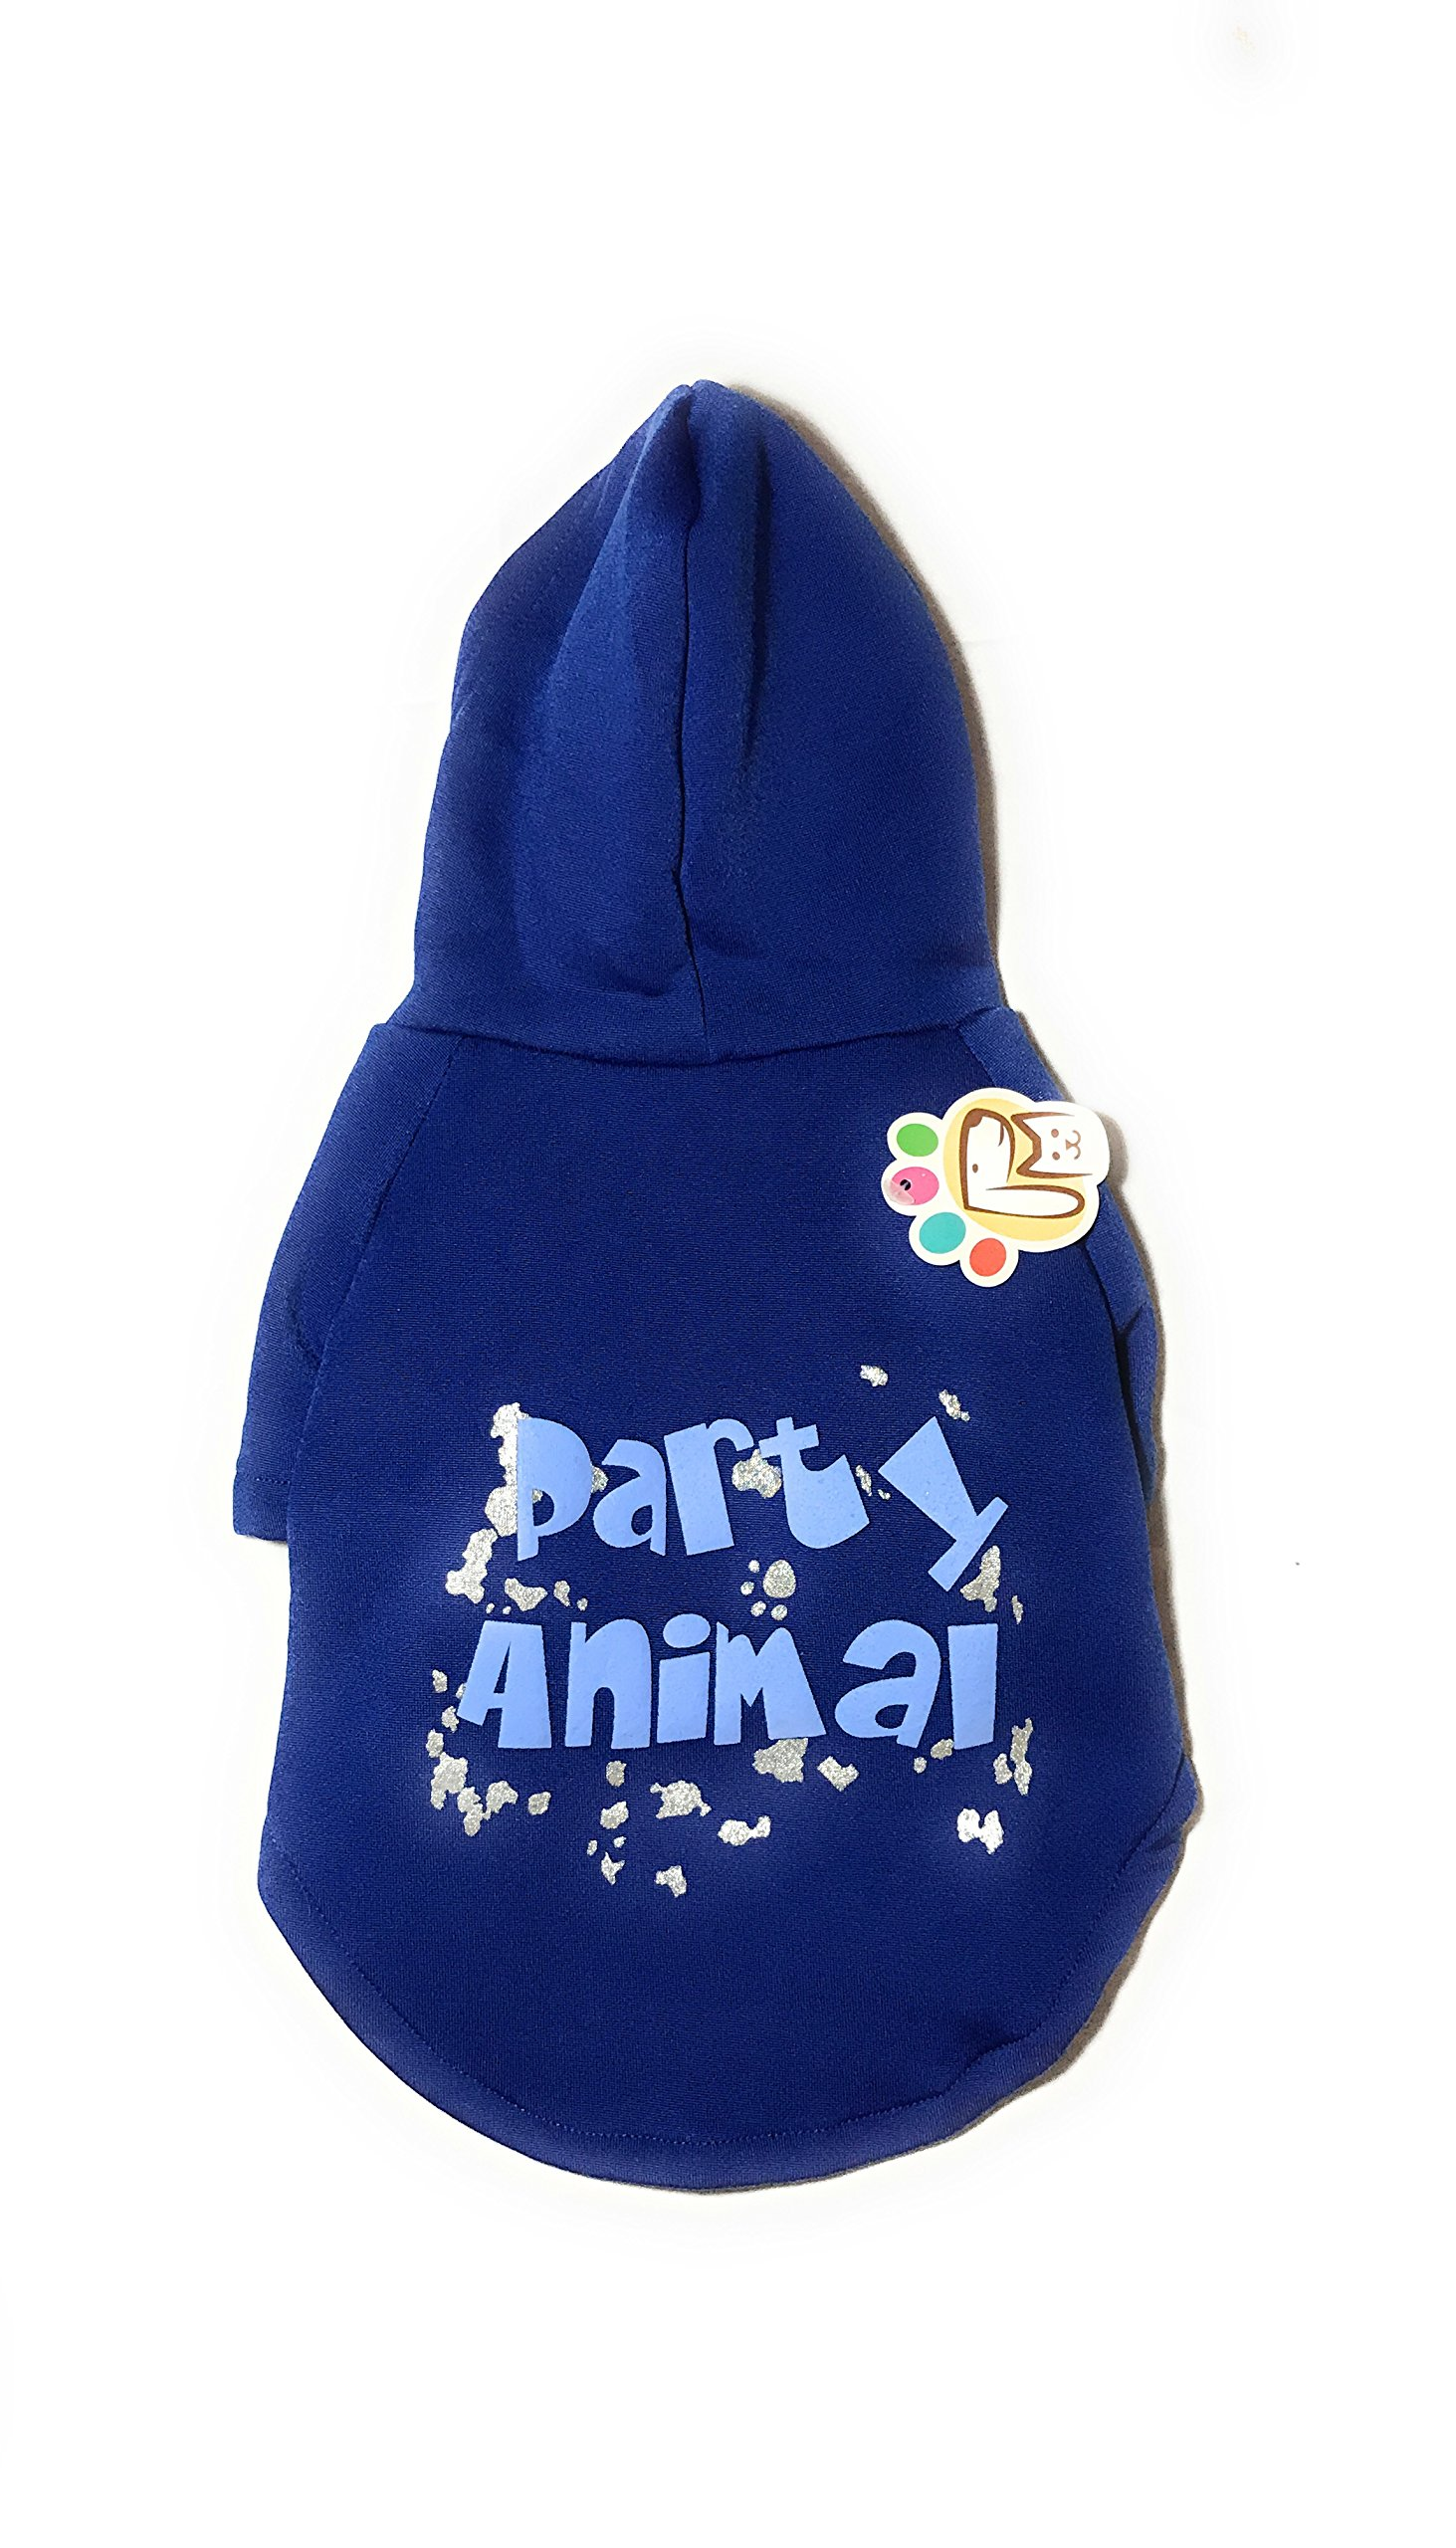 Dog or Puppy Sweater Hoodie ´Party Animal´ Blue and Silver for Large or Extra Large Pets XL size/ Extra Large Fashion and Funny Hoodie Shirt Petmont Brand For Boys Or Girls by Petmont (Image #5)